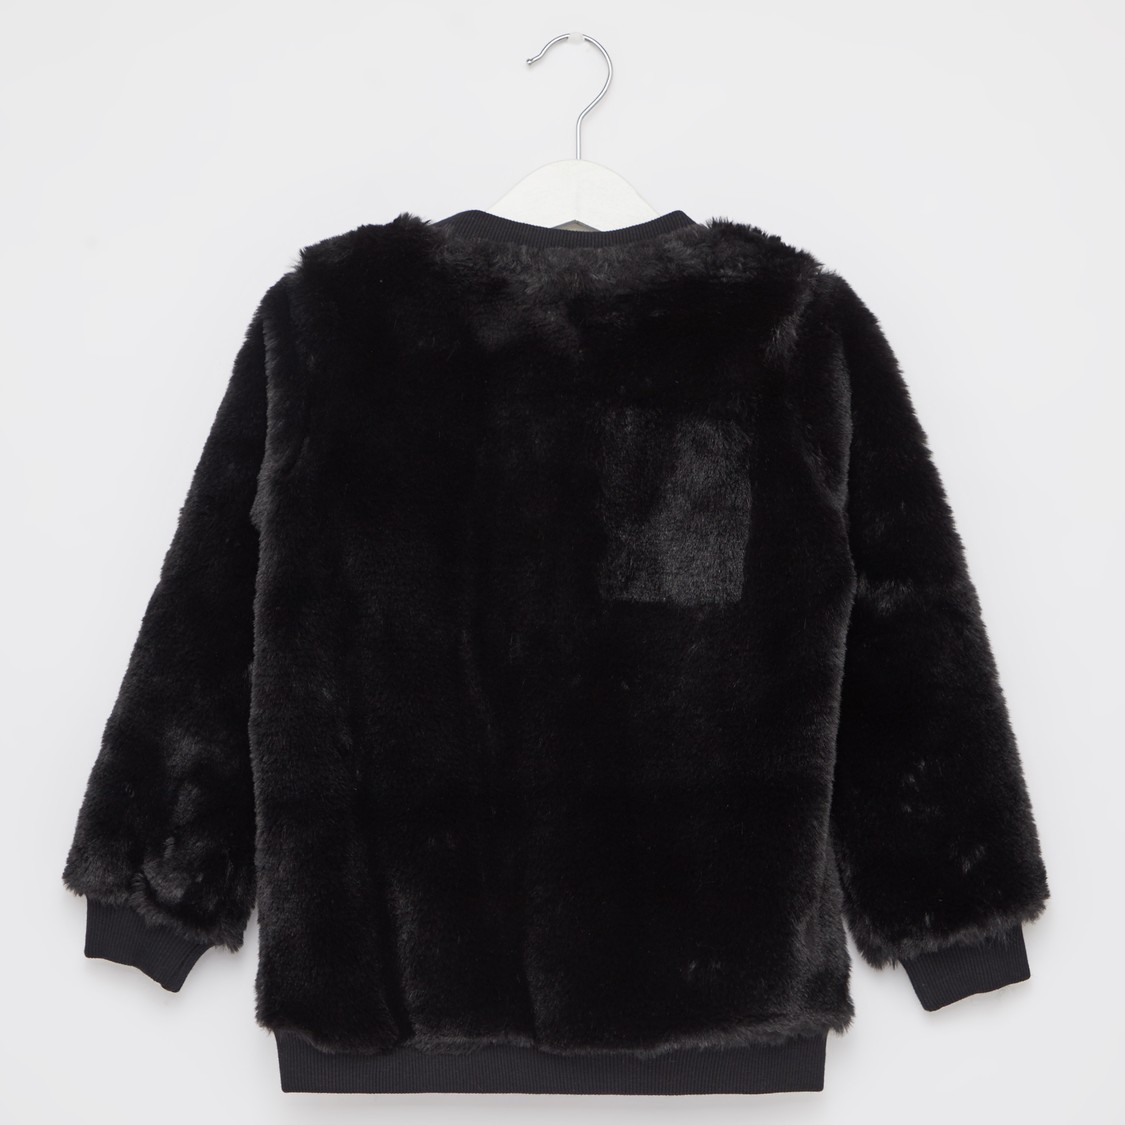 Fur Bomber Jacket with Long Sleeves and Zip Closure